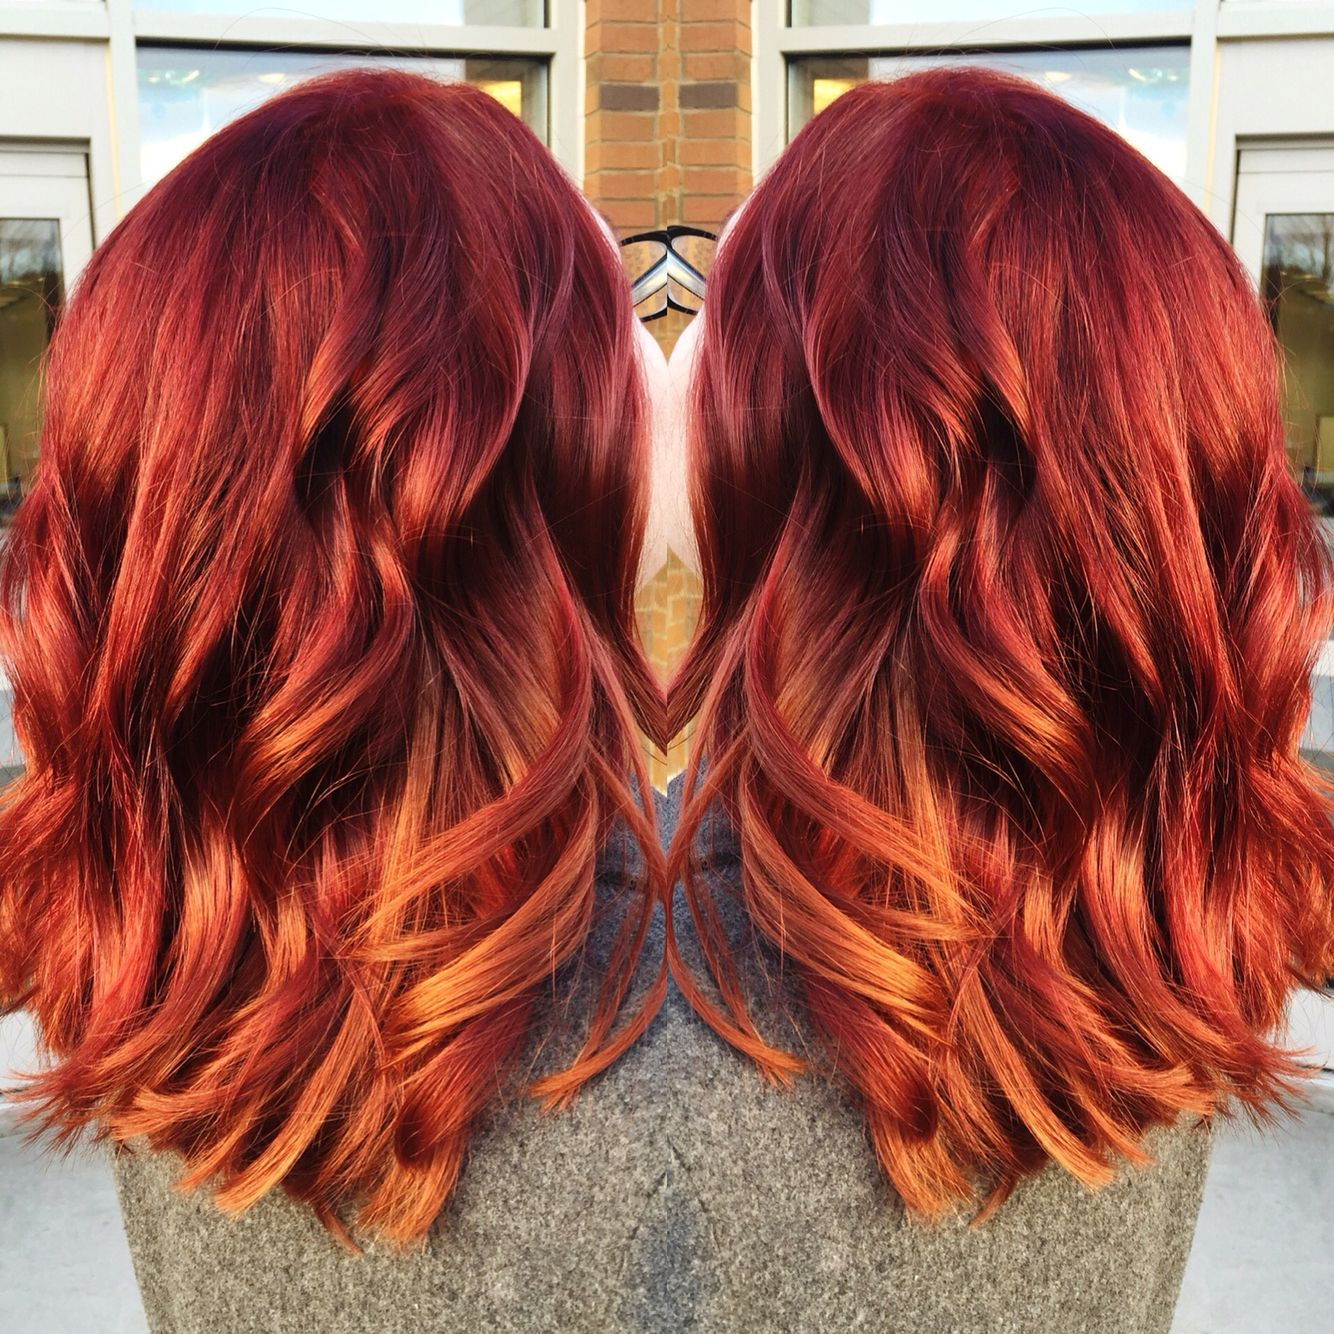 Red to copper color melt More  Hair Envy.  Hair, Hair inspo, Copper hair